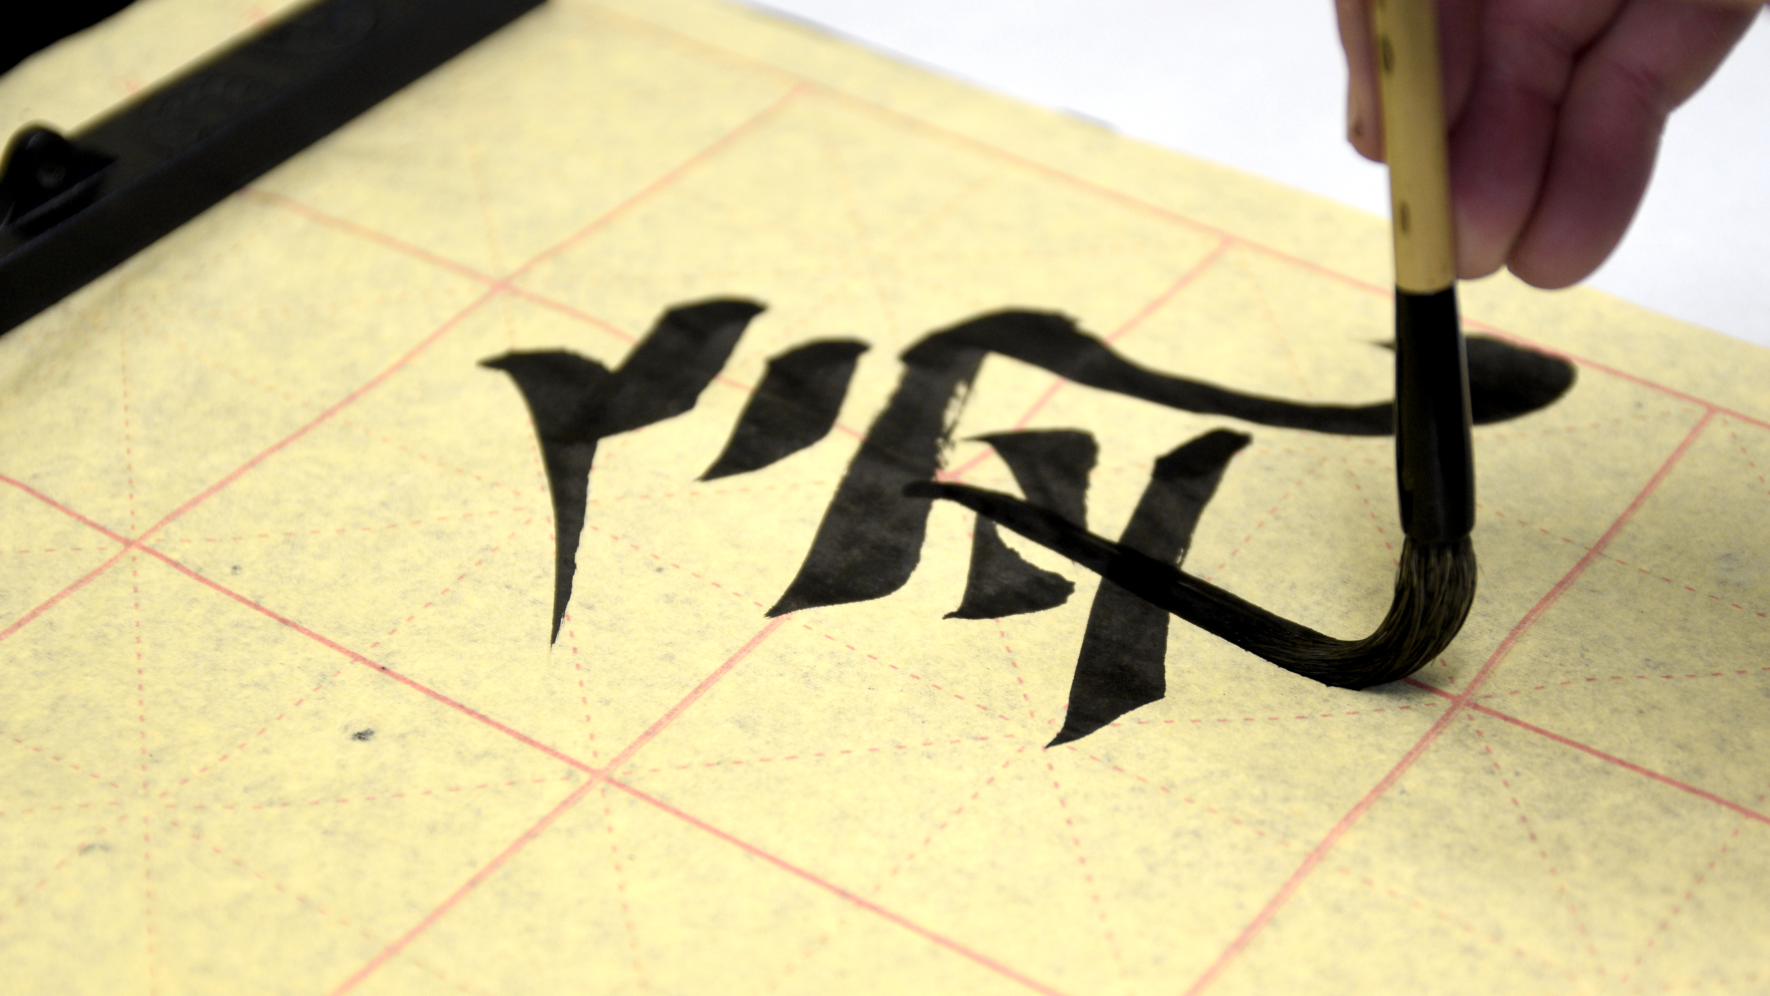 Udoyoshi japanese calligraphy class stroll tips